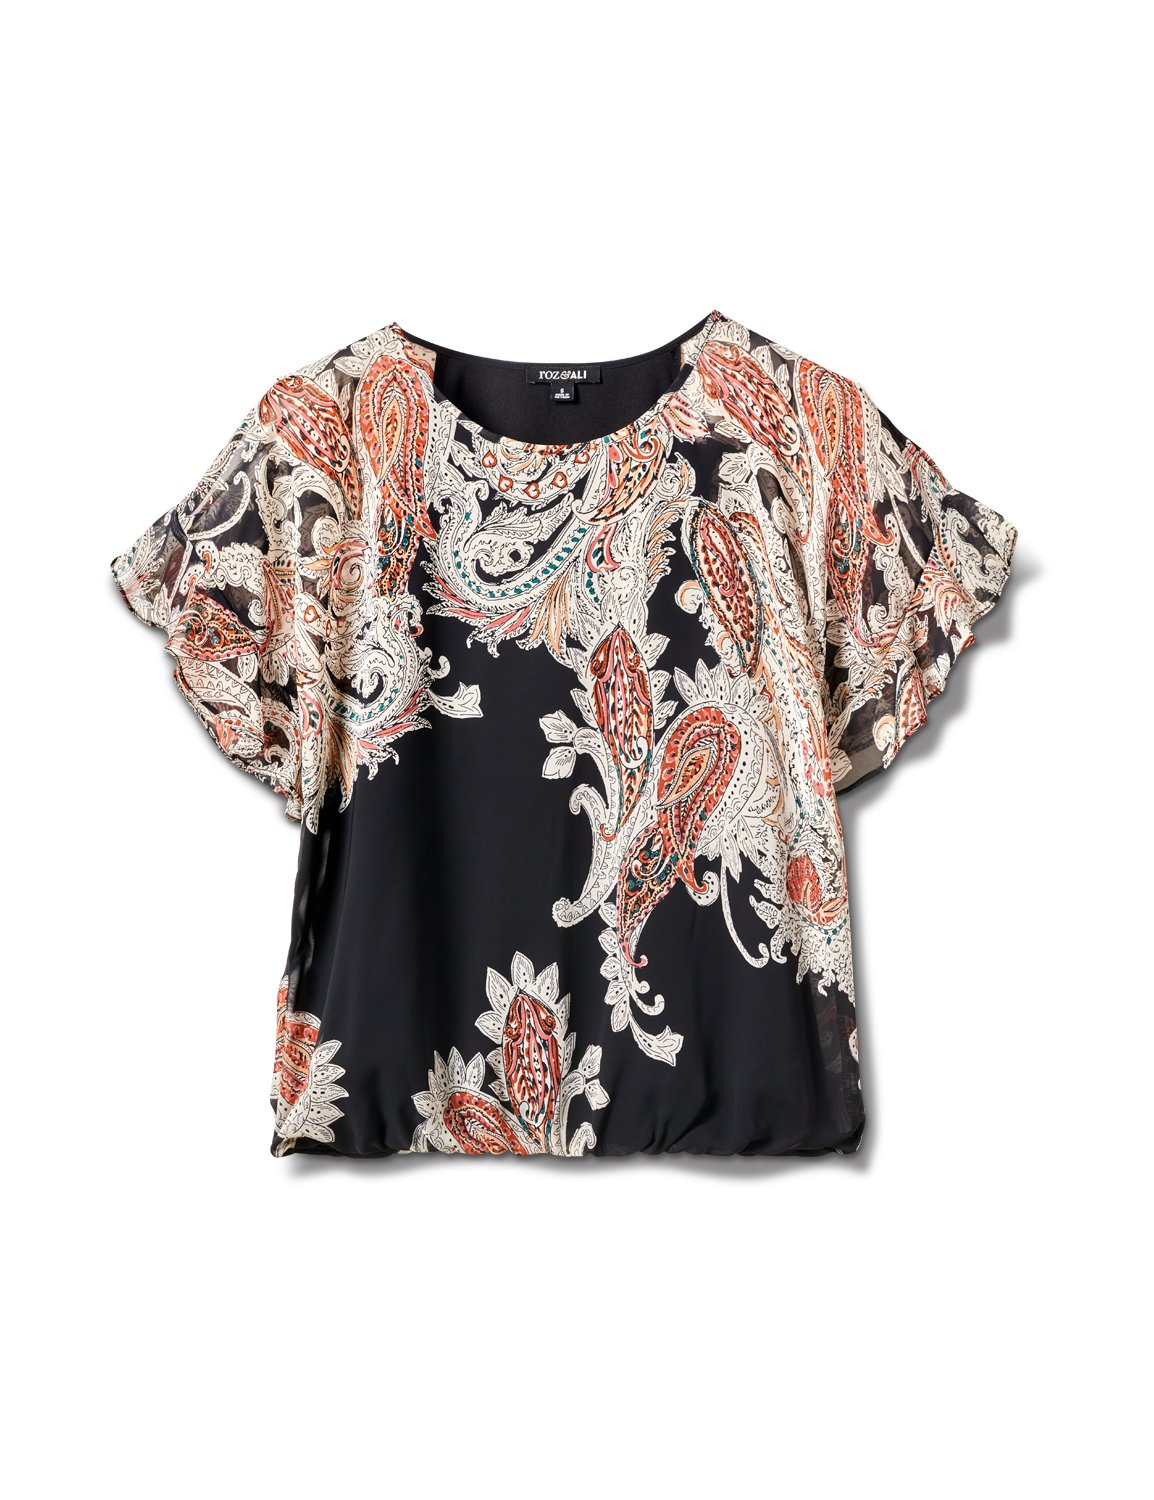 Roz & Ali Paisley Paisley Colder Shoulder Blouse - Misses -Black - Front